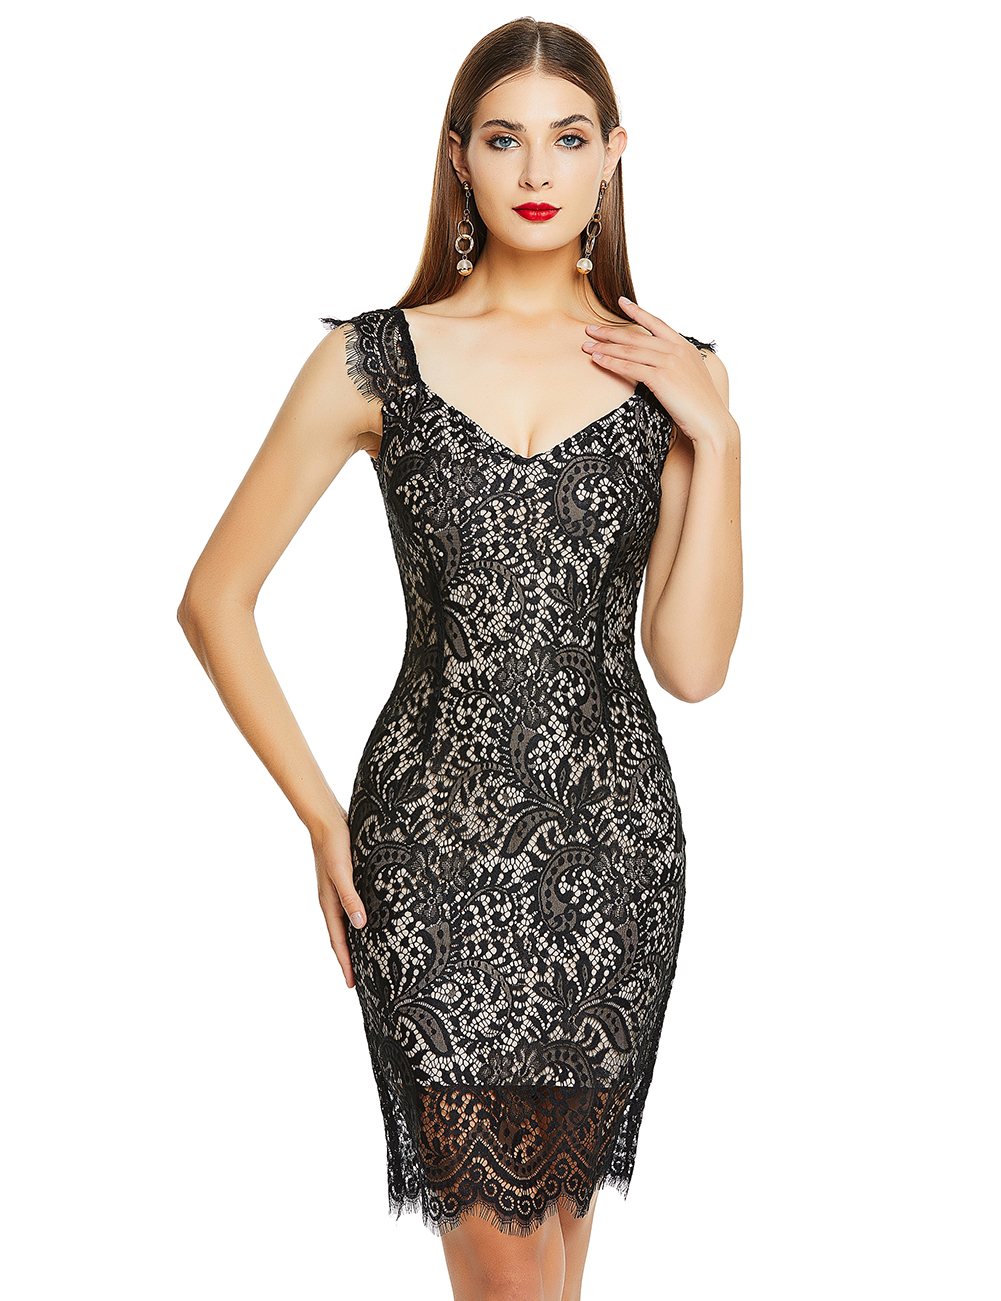 //cdn.affectcloud.com/hexinfashion/upload/imgs/Dress/Bandage_Dress/VZ191038-BK1/VZ191038-BK1-201911015dbbe2fc91352.jpg